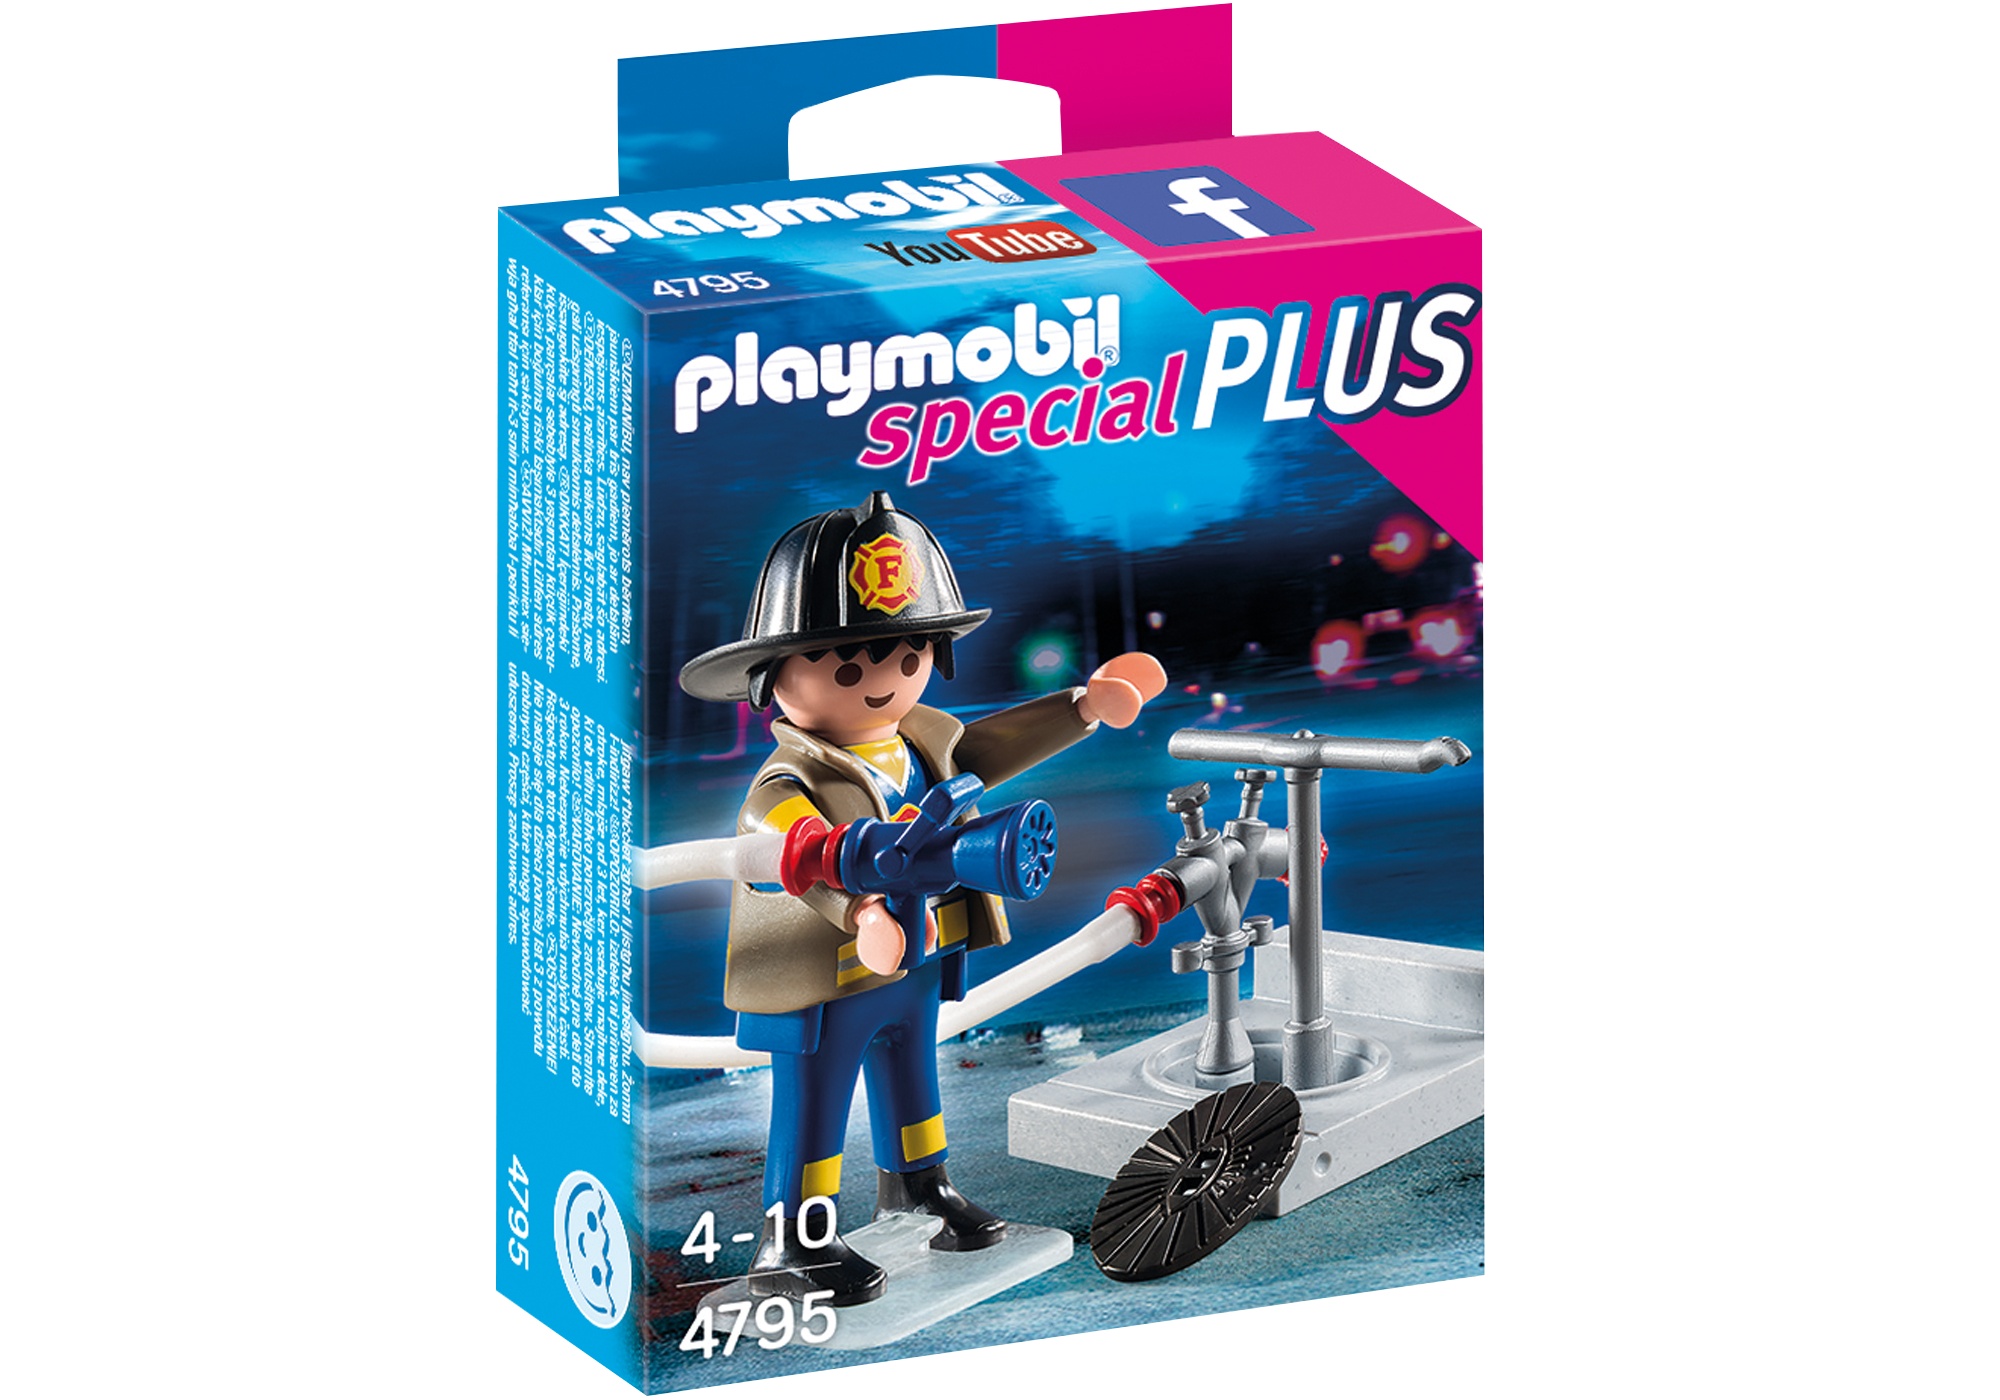 http://media.playmobil.com/i/playmobil/4795_product_box_front